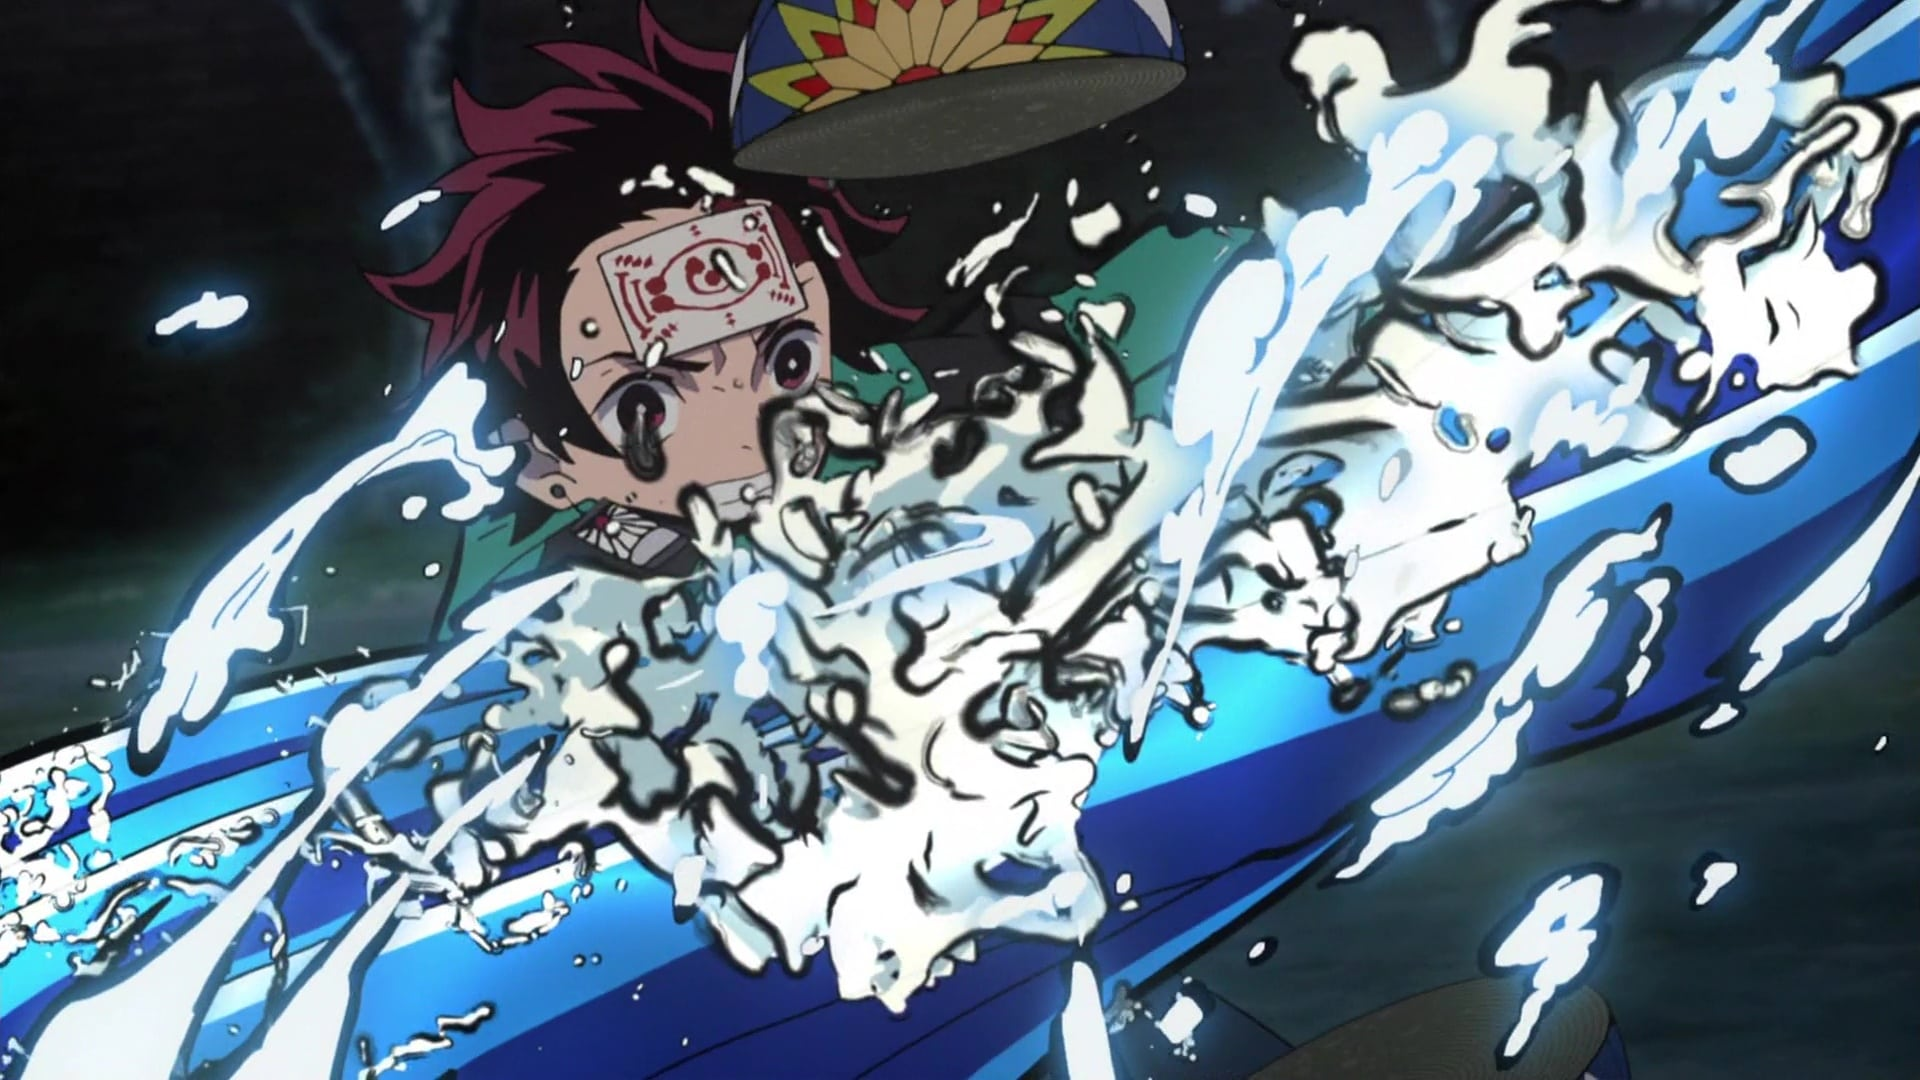 Nonton Anime Demon Slayer: Kimetsu no Yaiba: S1 - Ep. 9